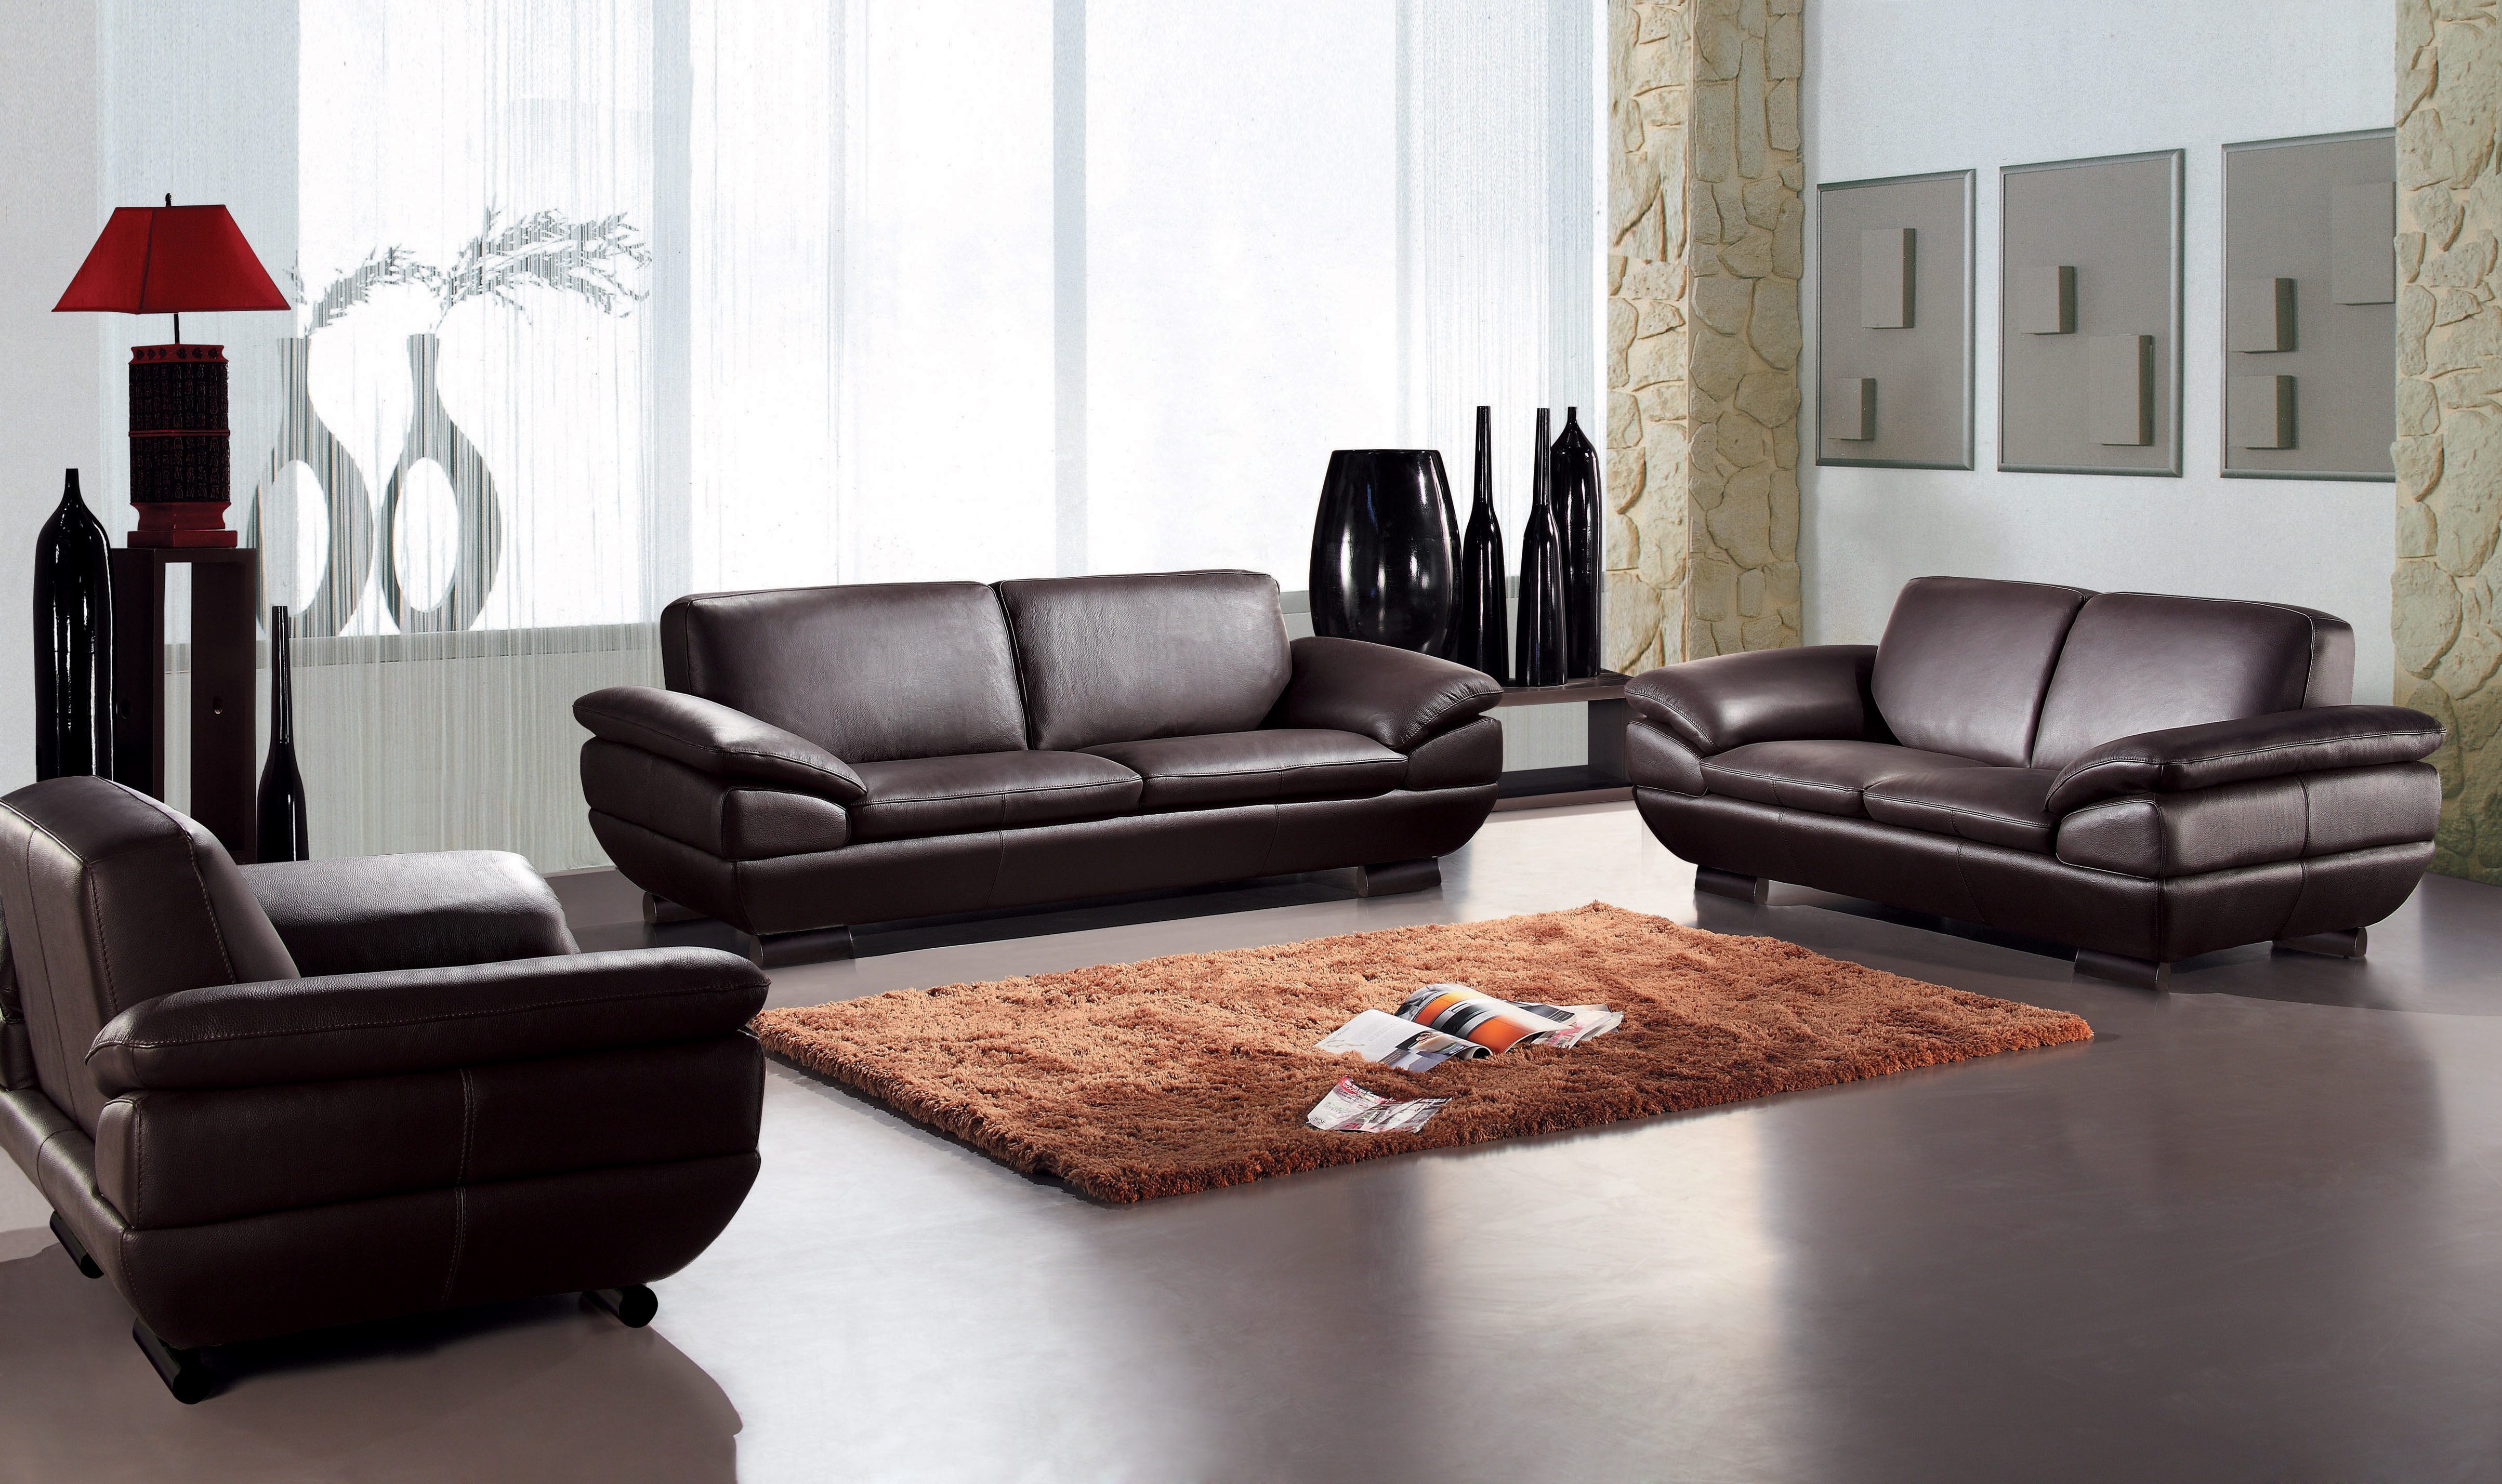 Sofa Set Offer Up Contemporary Three Piece Sofa Set In Dark Brown Leather